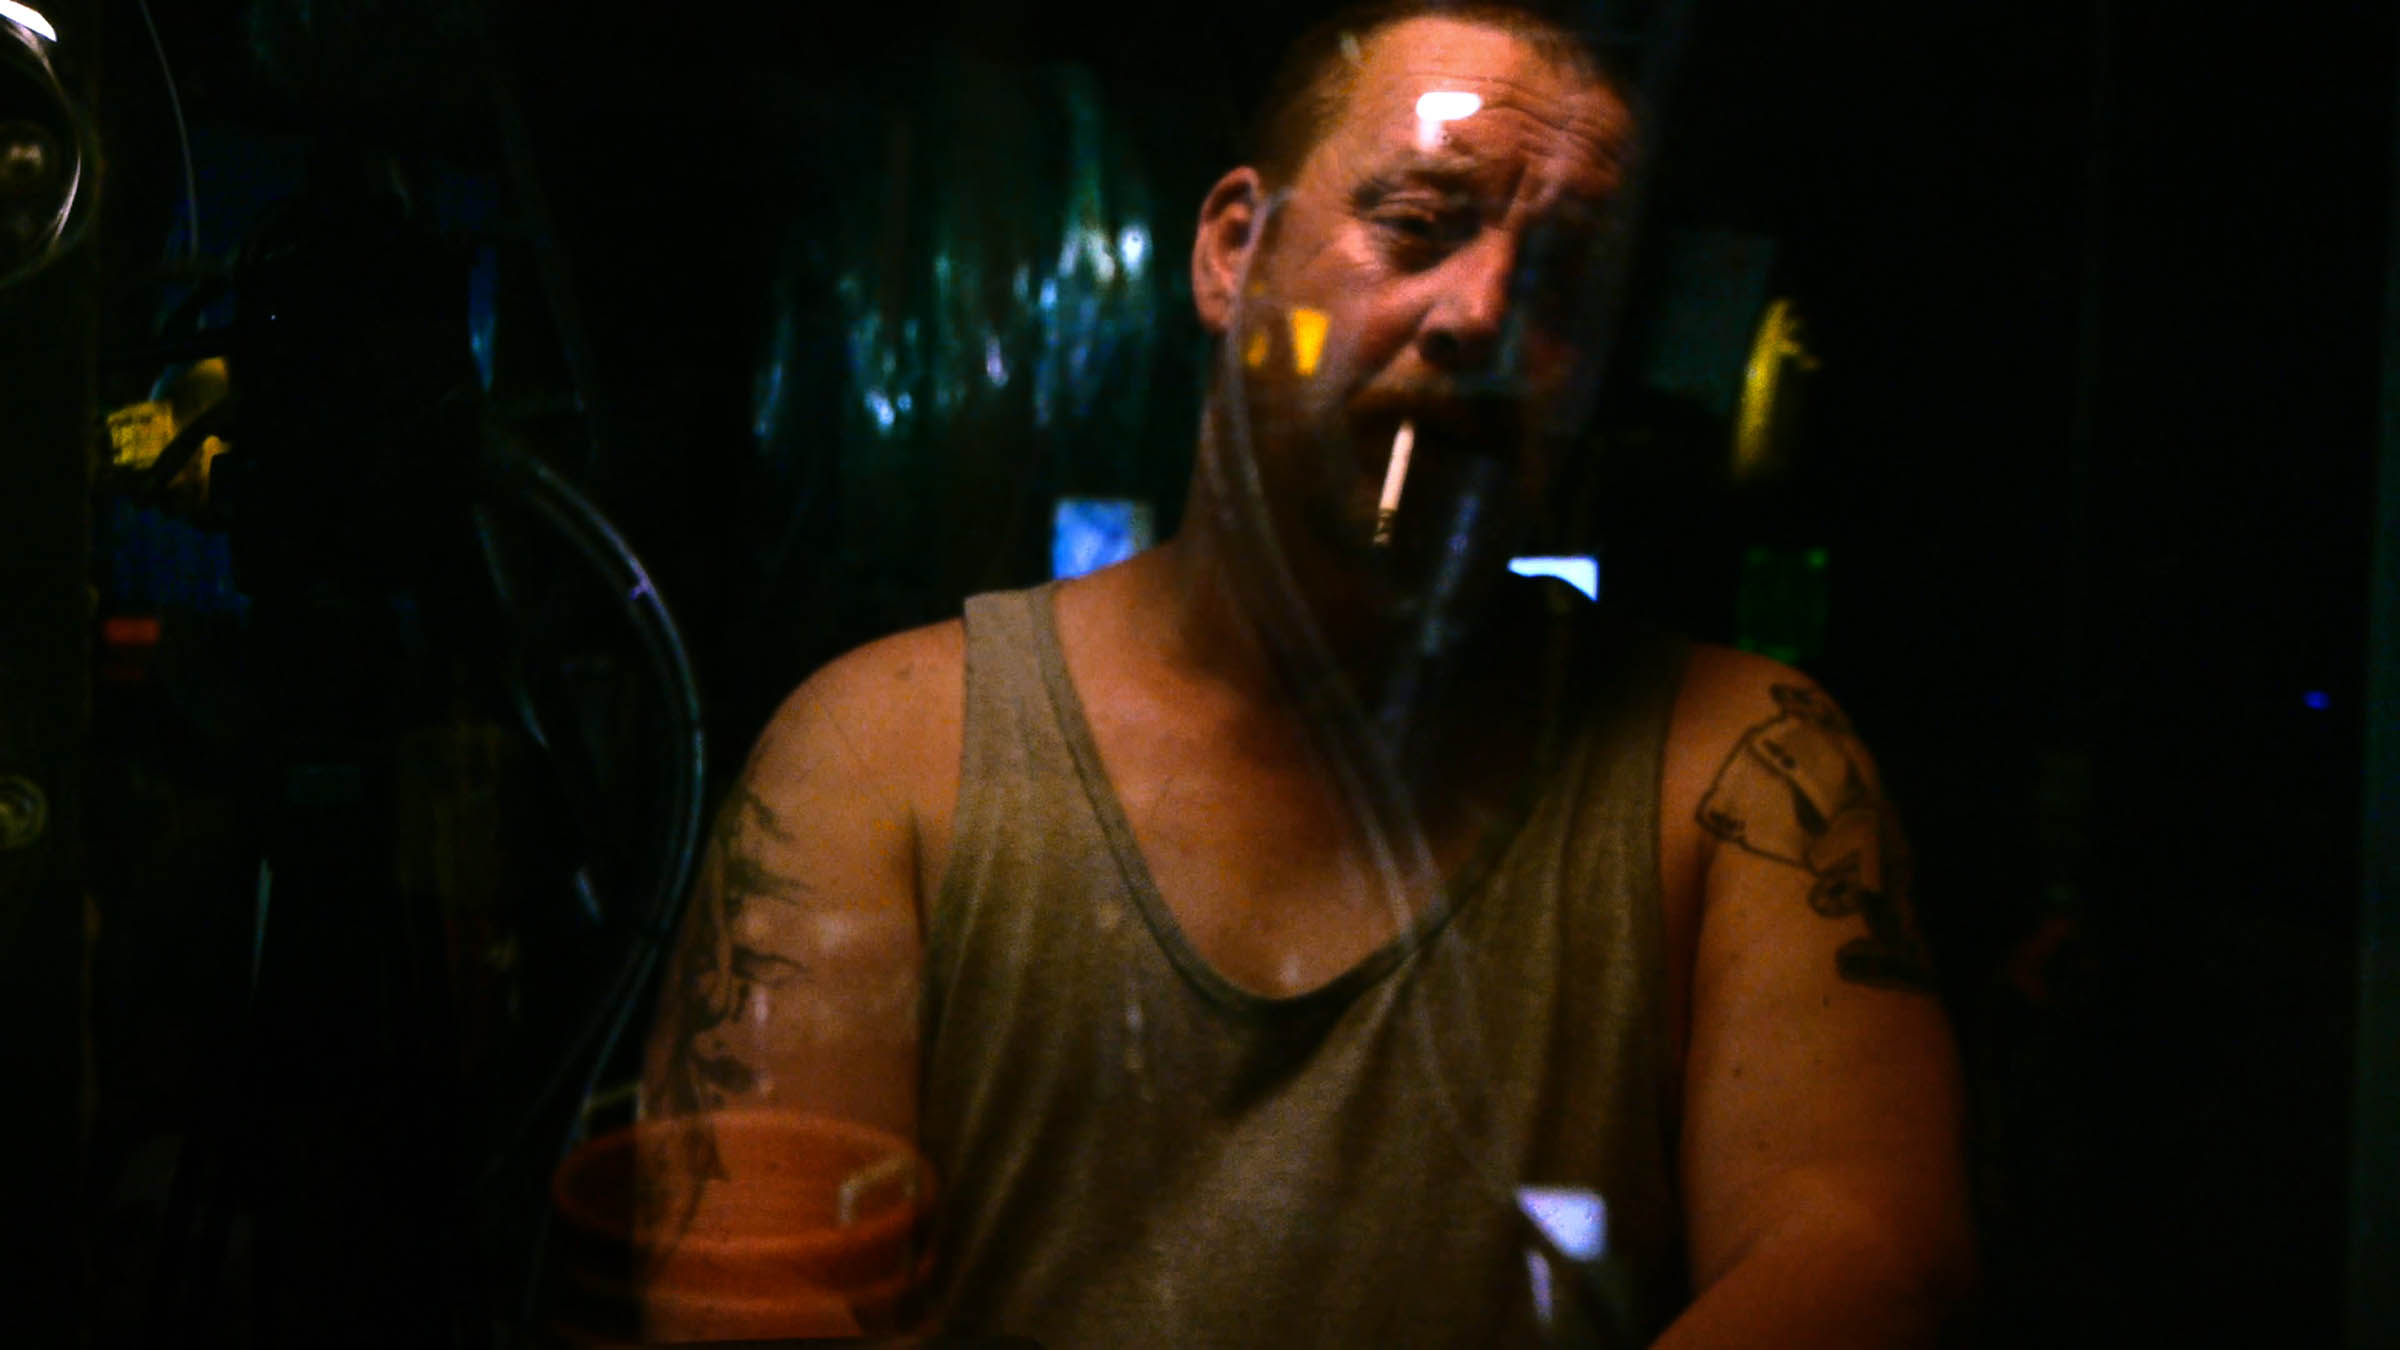 A still from Leviathan. A tattooed man in a grey tank top, seen through glass, works aboard the ship. His head is tilted to the side, his expression shows fatigue, and a cigarette dangles from his lips.